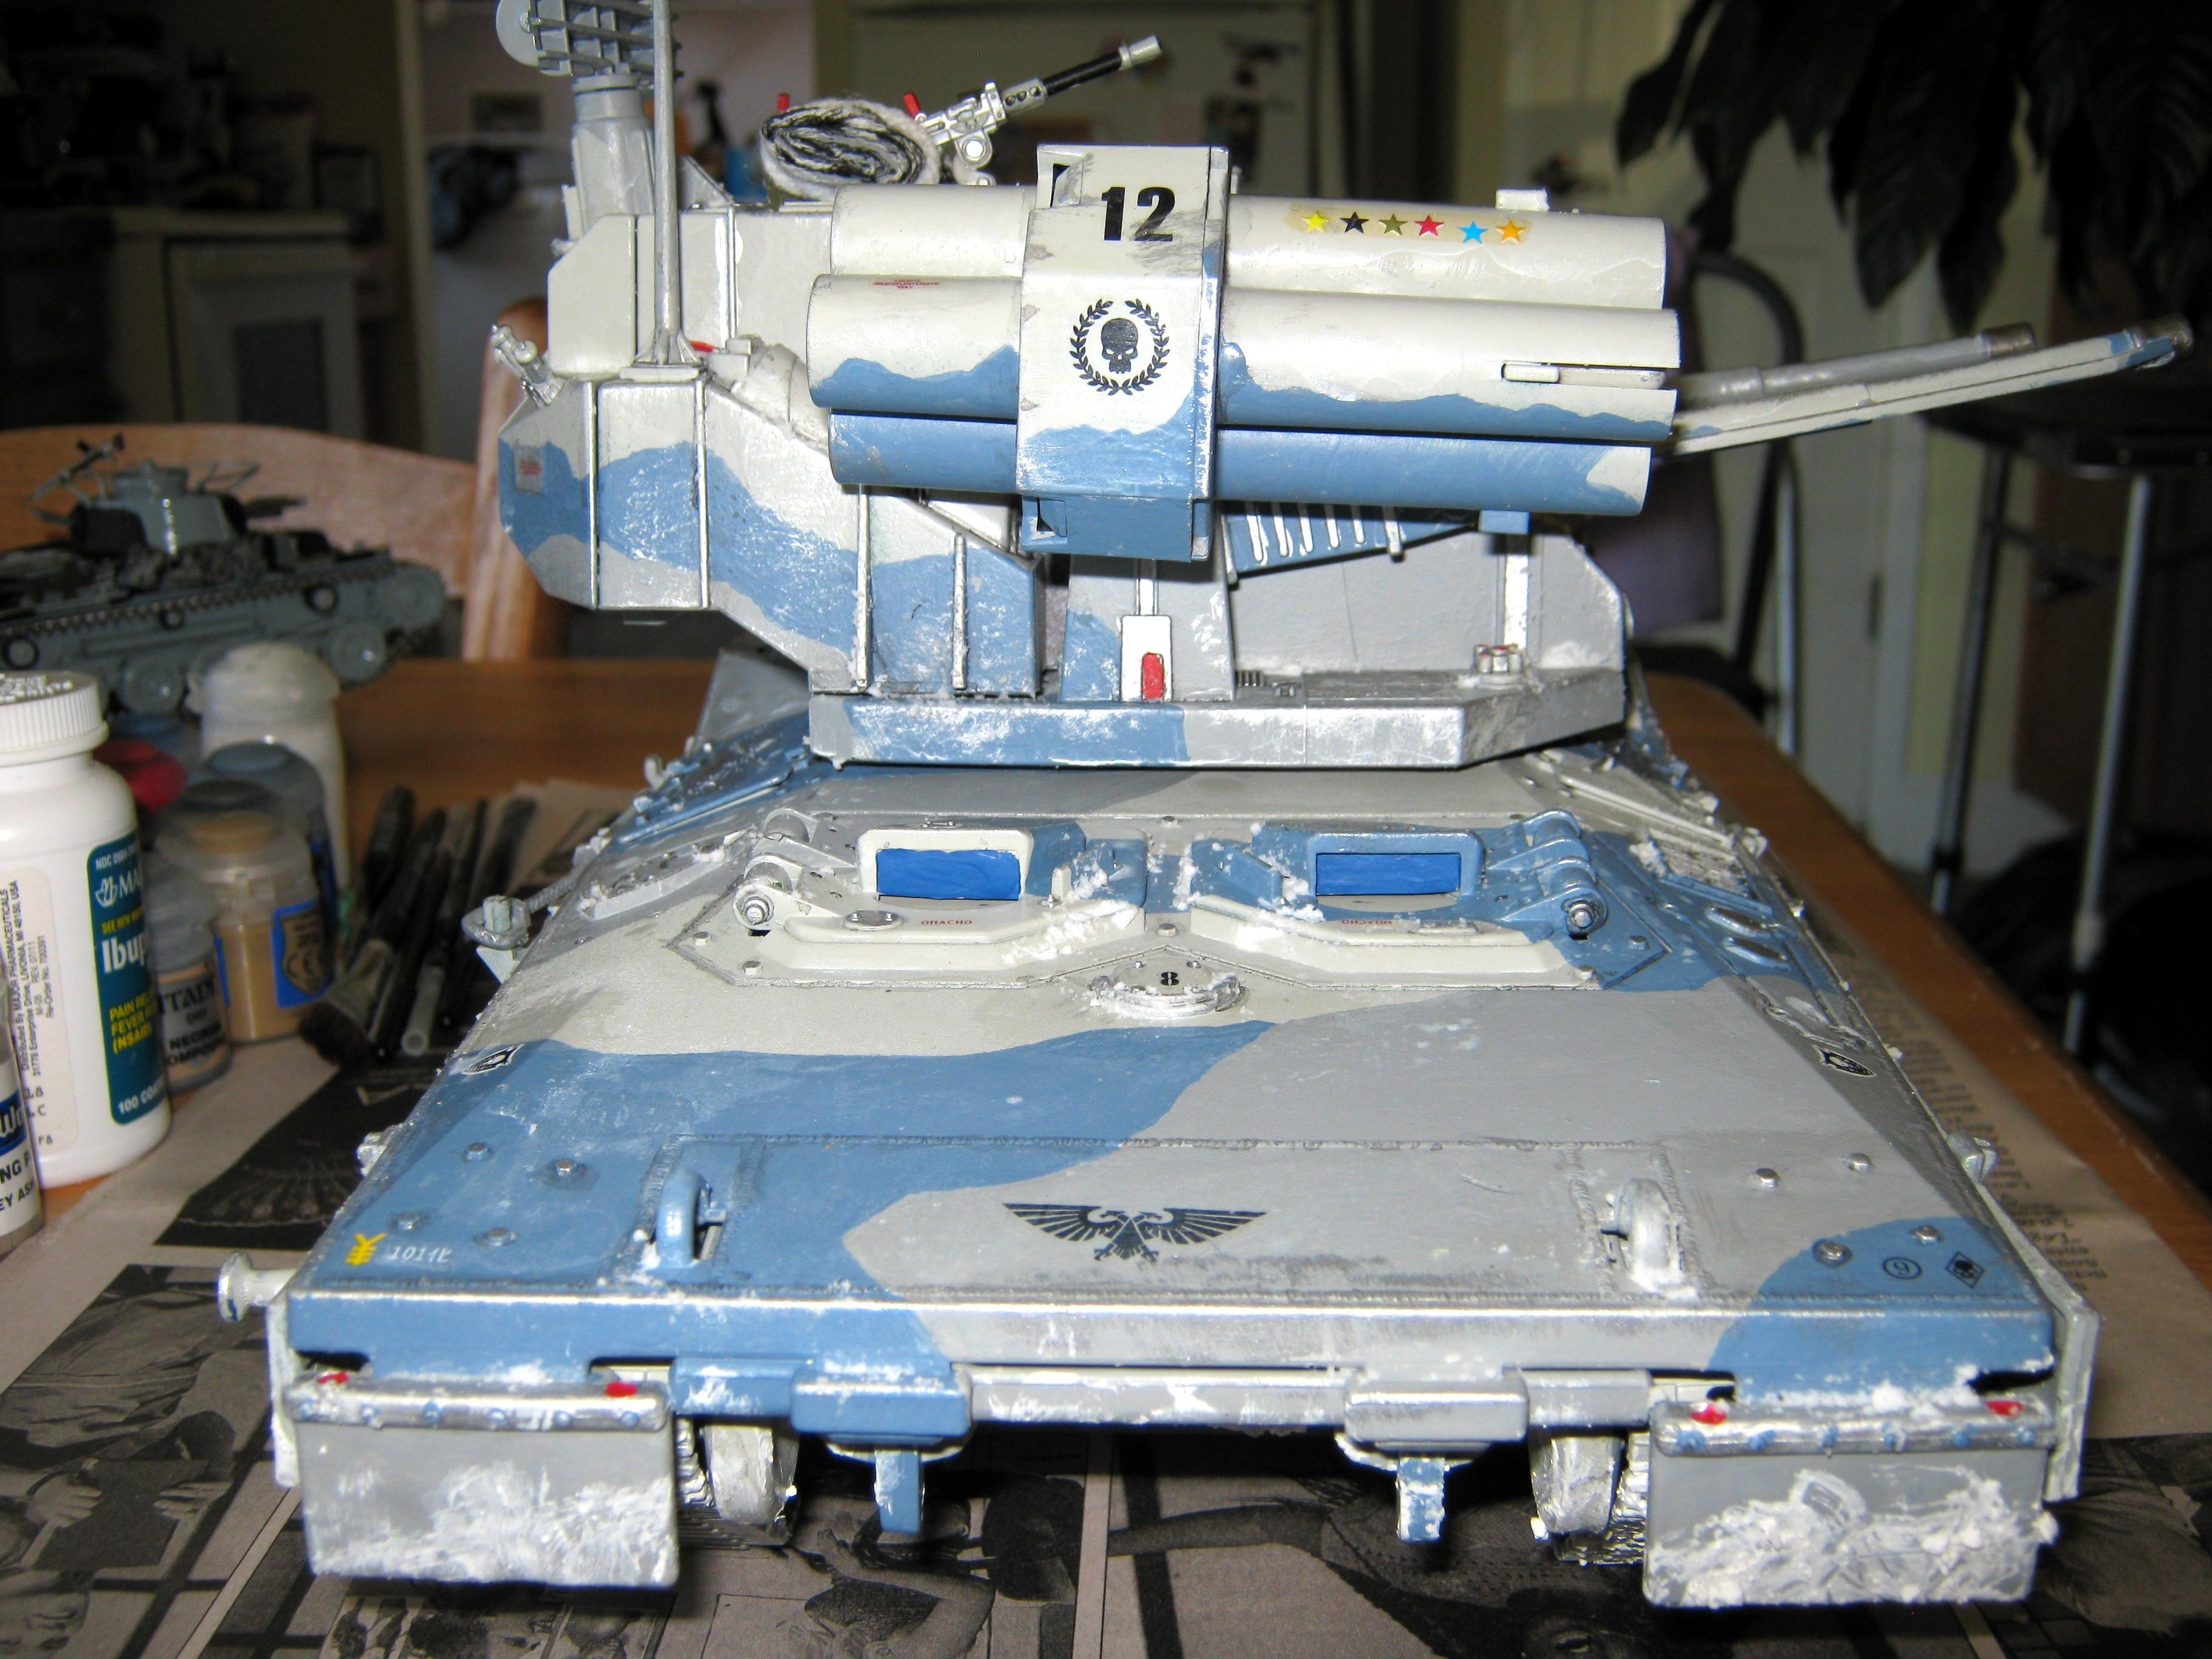 Adv, Afv, Air Defense Vehicle, Anti-aircraft, Artillery, Conversion, G.i. Joe, Imperial, Self Propelled, Super-heavy, Tank, Toy